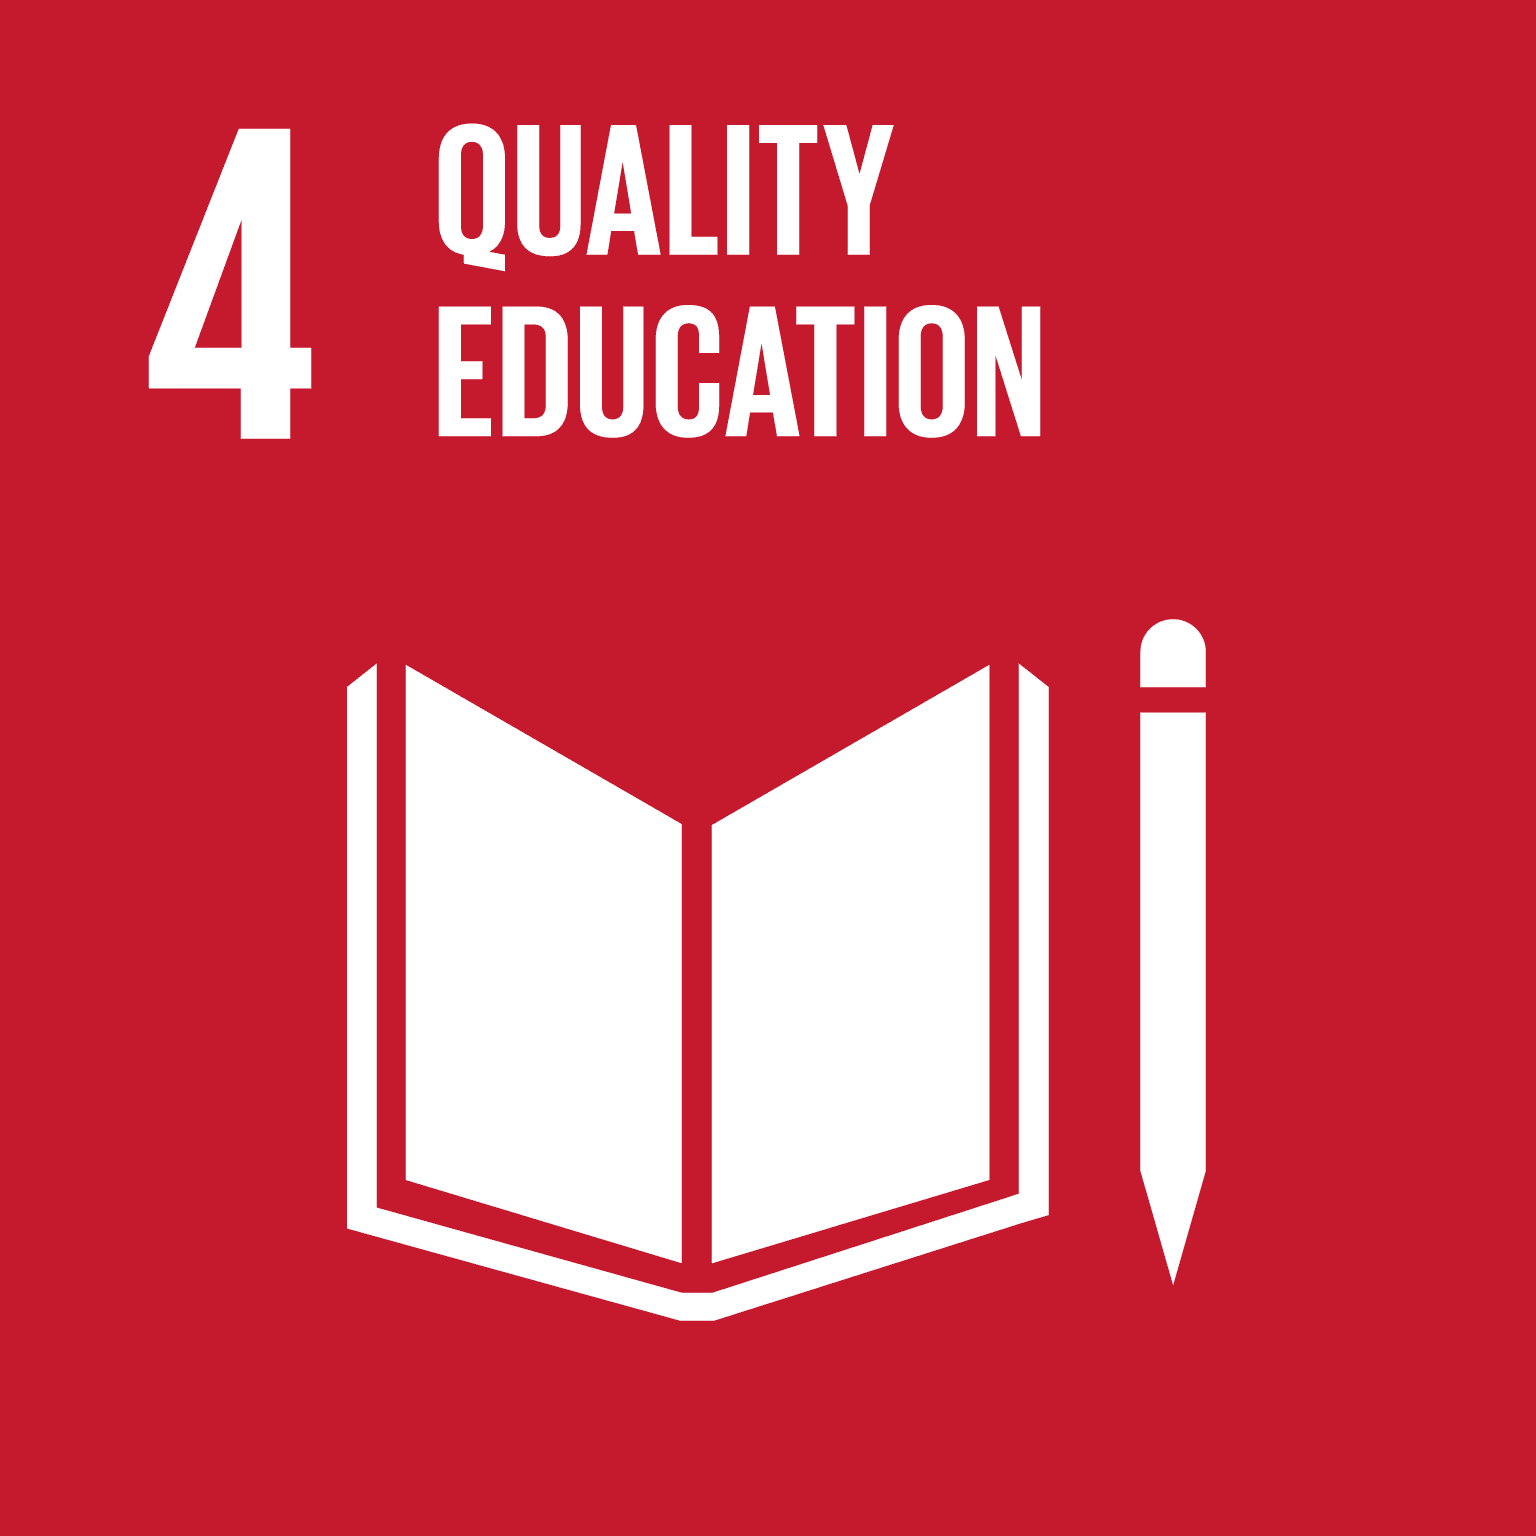 High-quality education for all